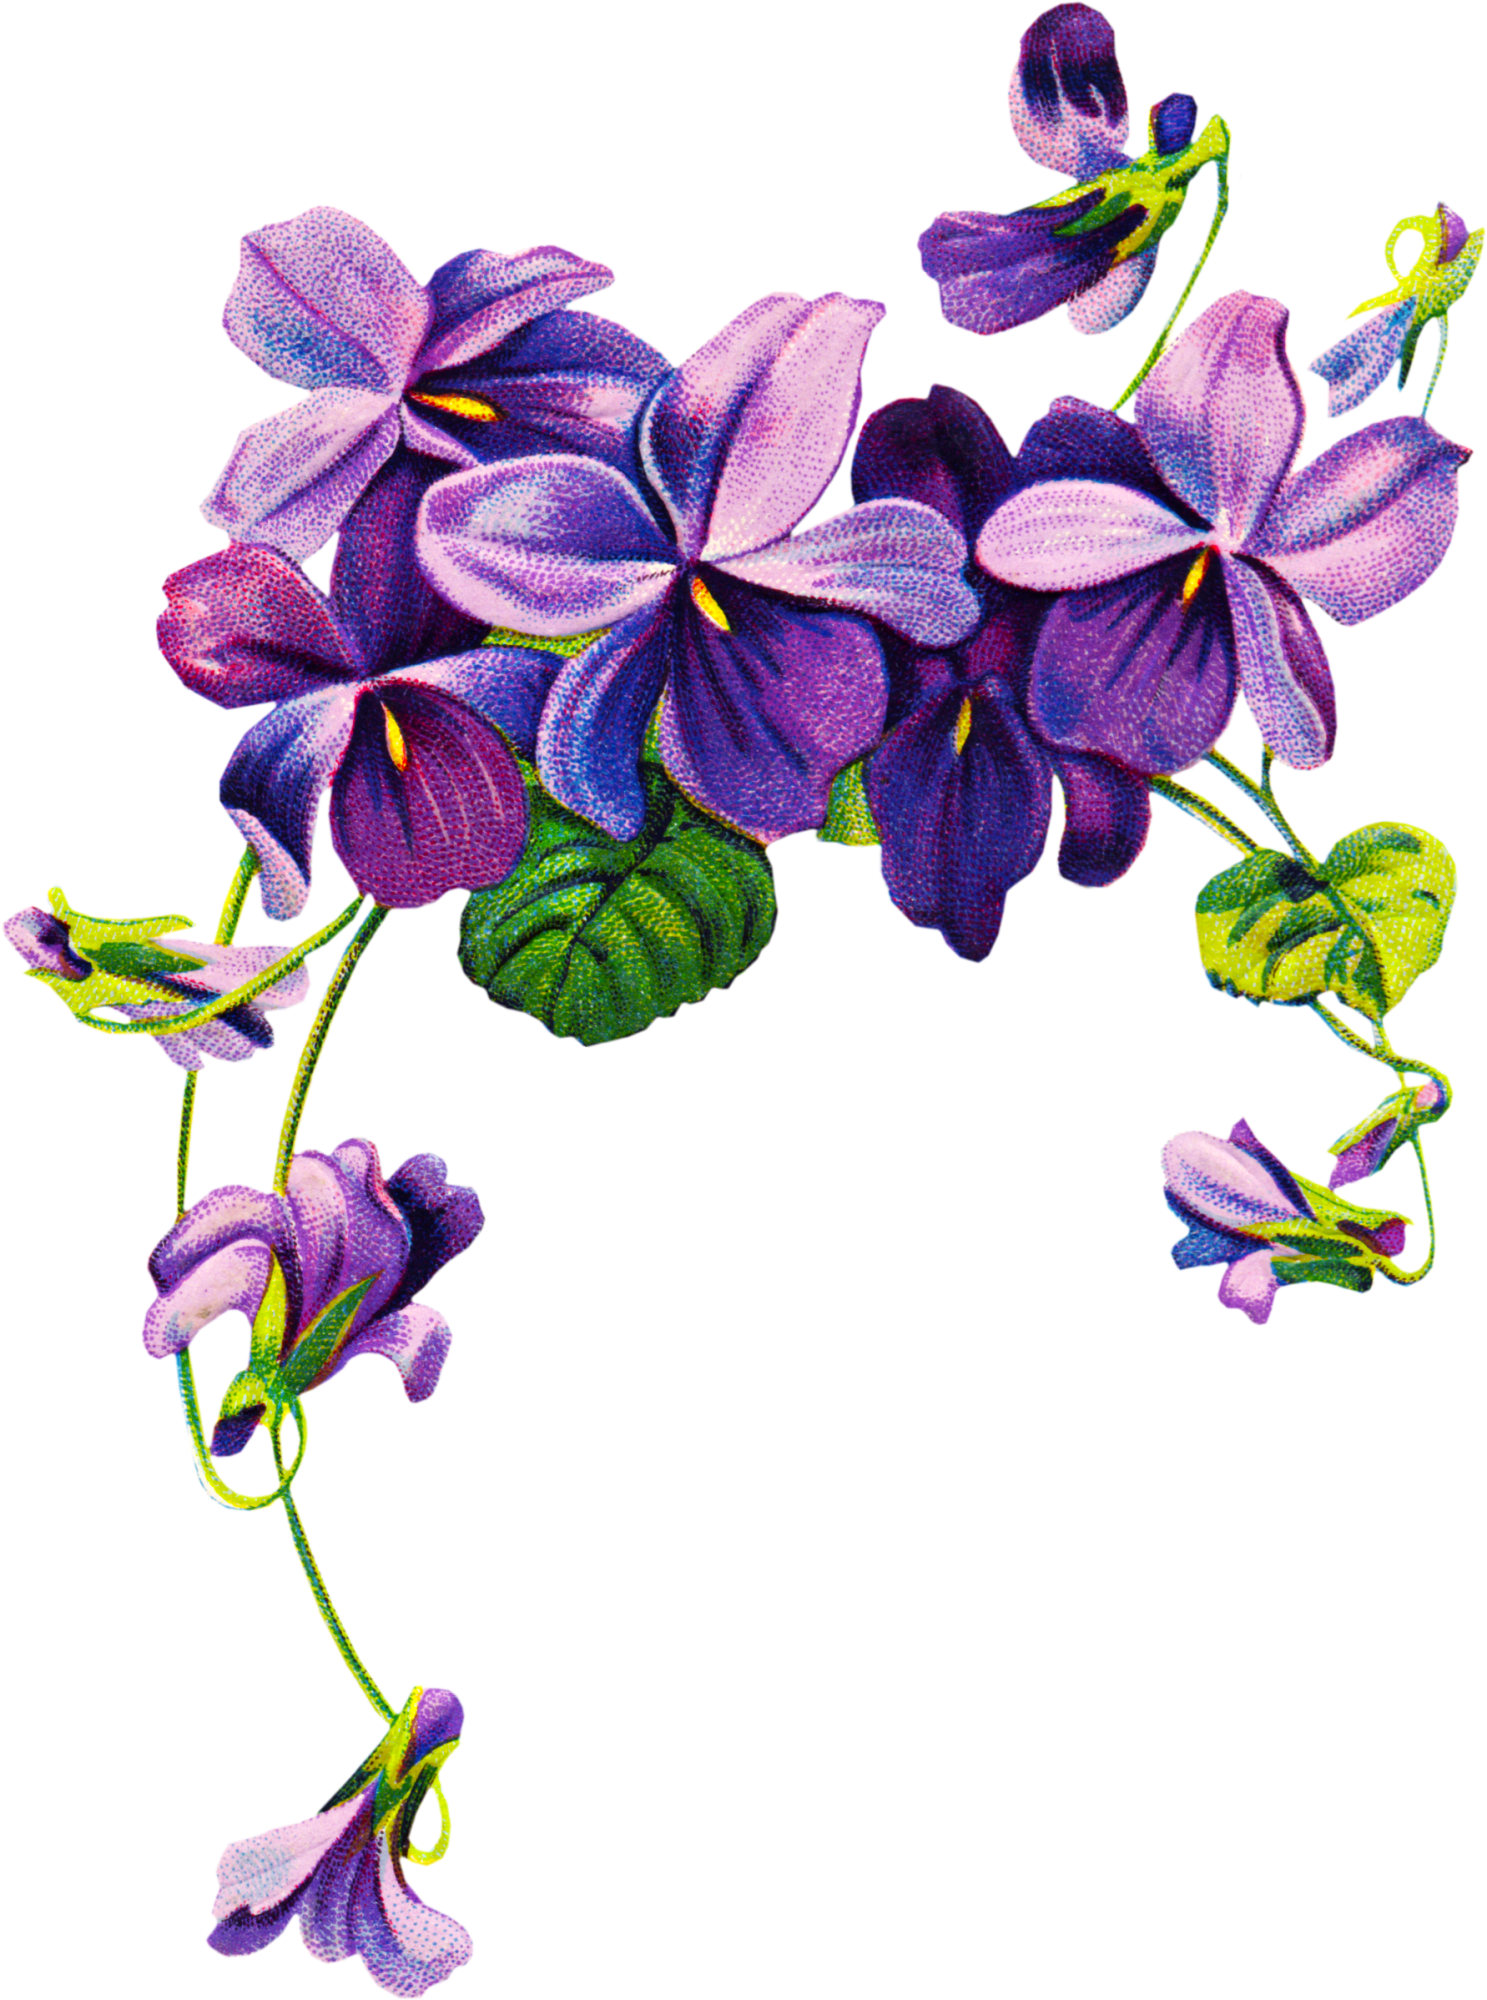 png freeuse download Violets drawing. Purple flower at getdrawings